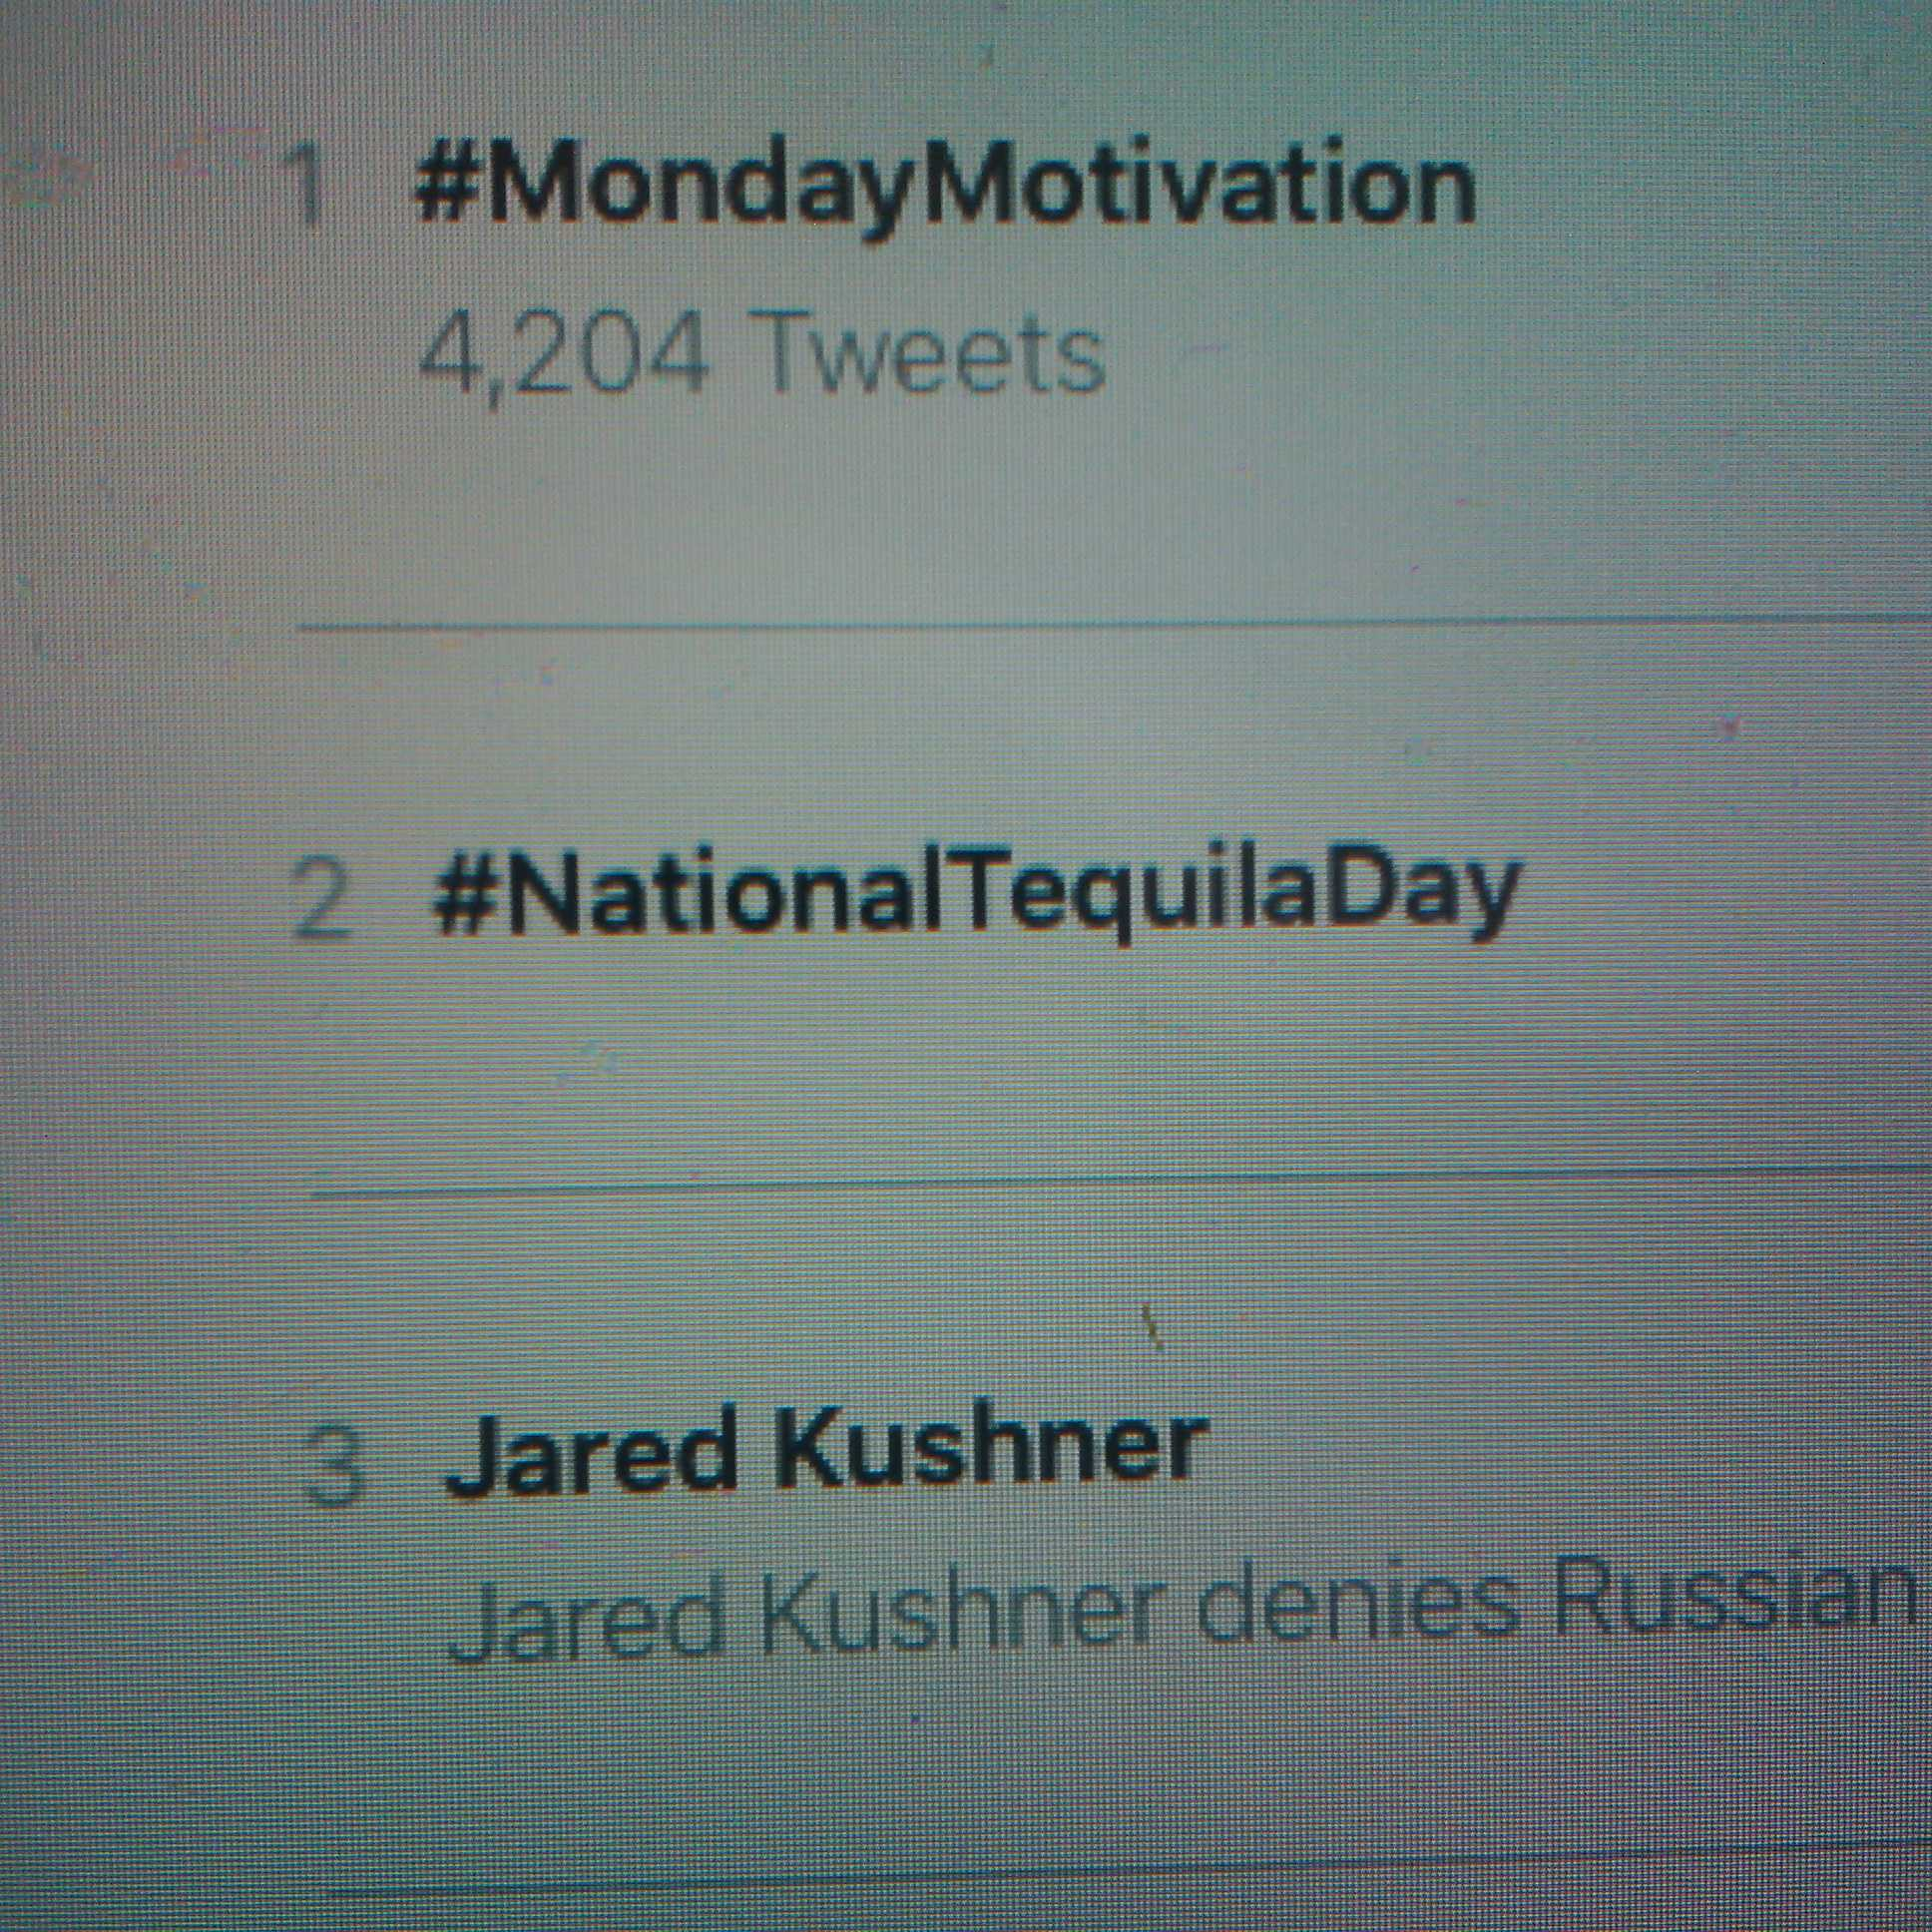 The UK has now a #NationalTequilaDay! And it's trending in 2nd place! Happy #NationalTequilaDay, amigos in UK! https://t.co/EfrretICYY